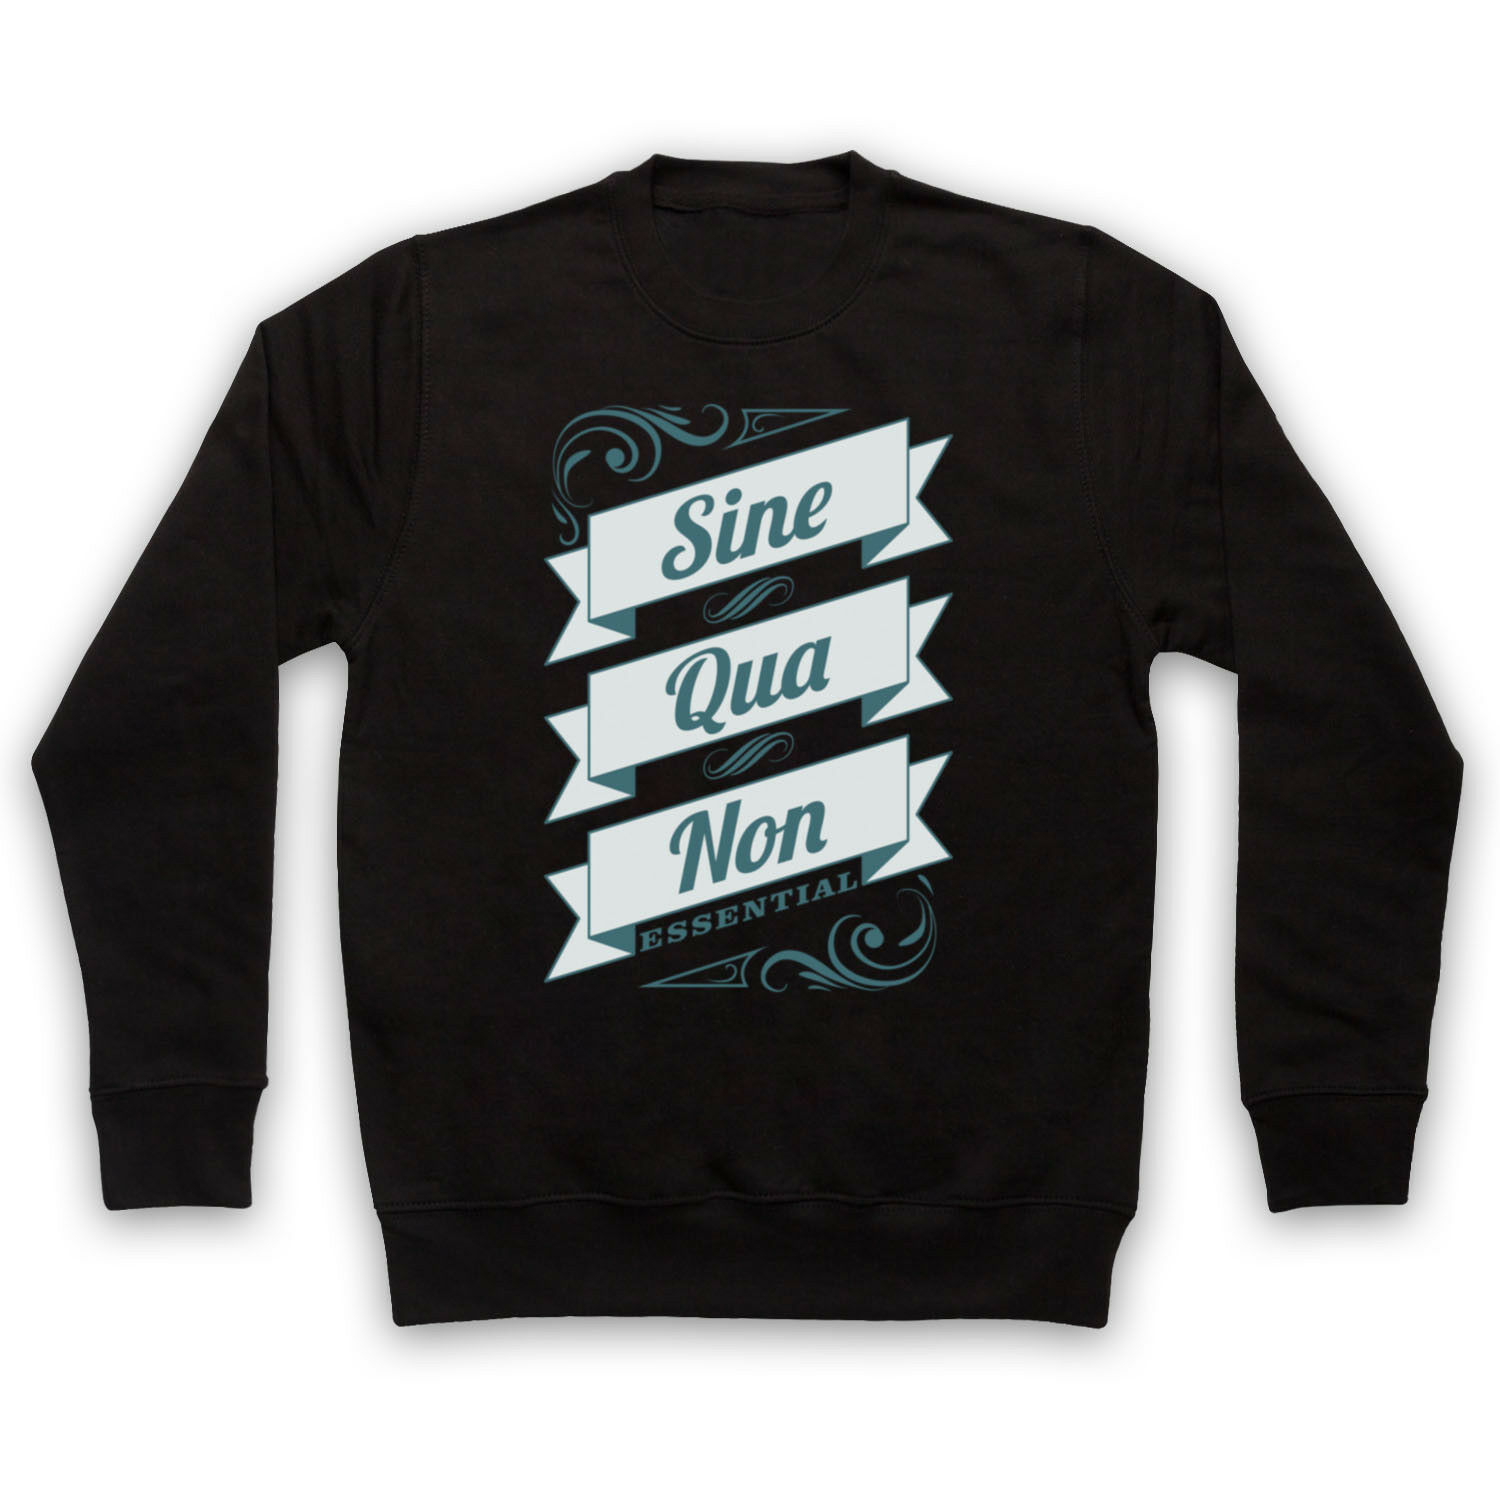 SINE QUA NON ESSENTIAL LATIN PHRASE QUOTE ADULTS KIDS SWEATSHIRT